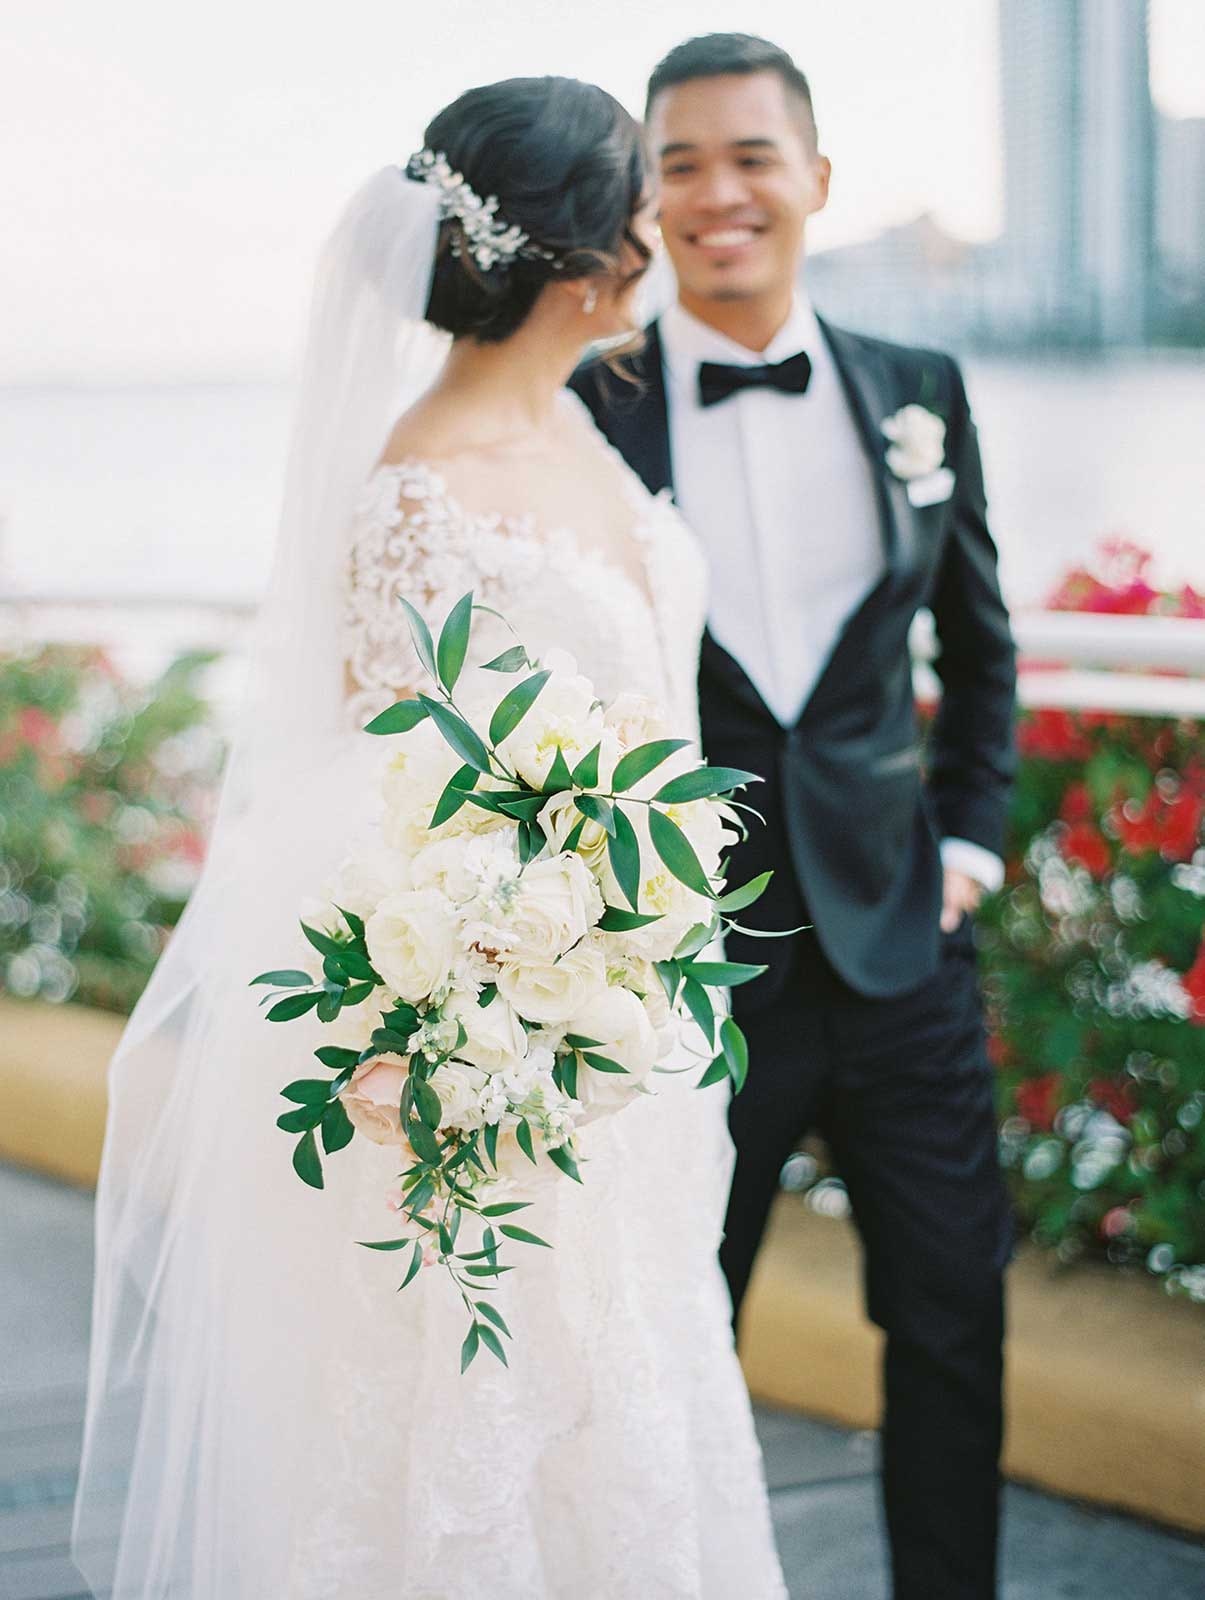 side angle of bride and groom walking towards the camera smiling at each other with bride holding her bouquet.